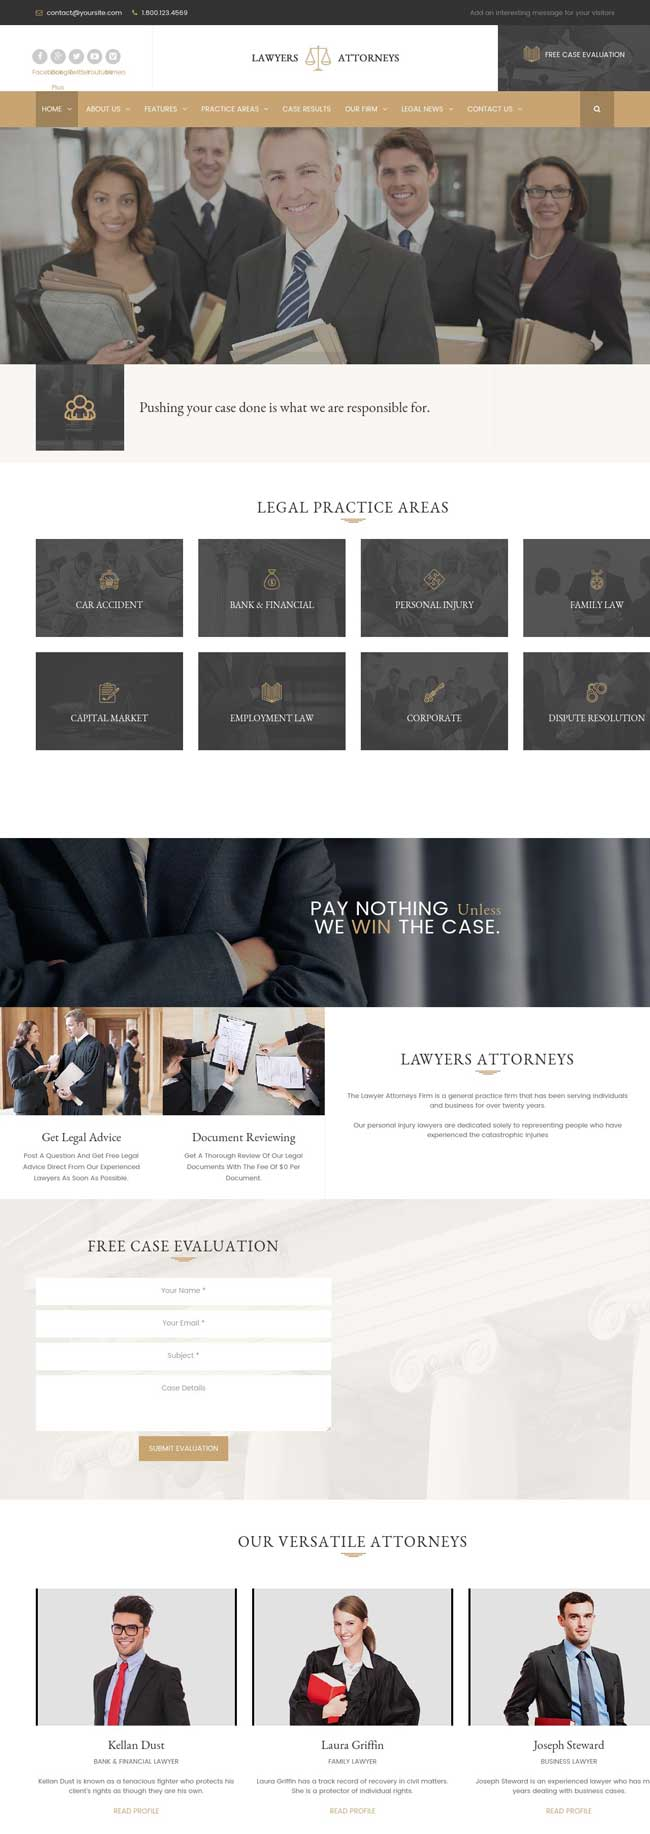 Lawyer-Attorneys-A-Law-Office-WordPress-Theme